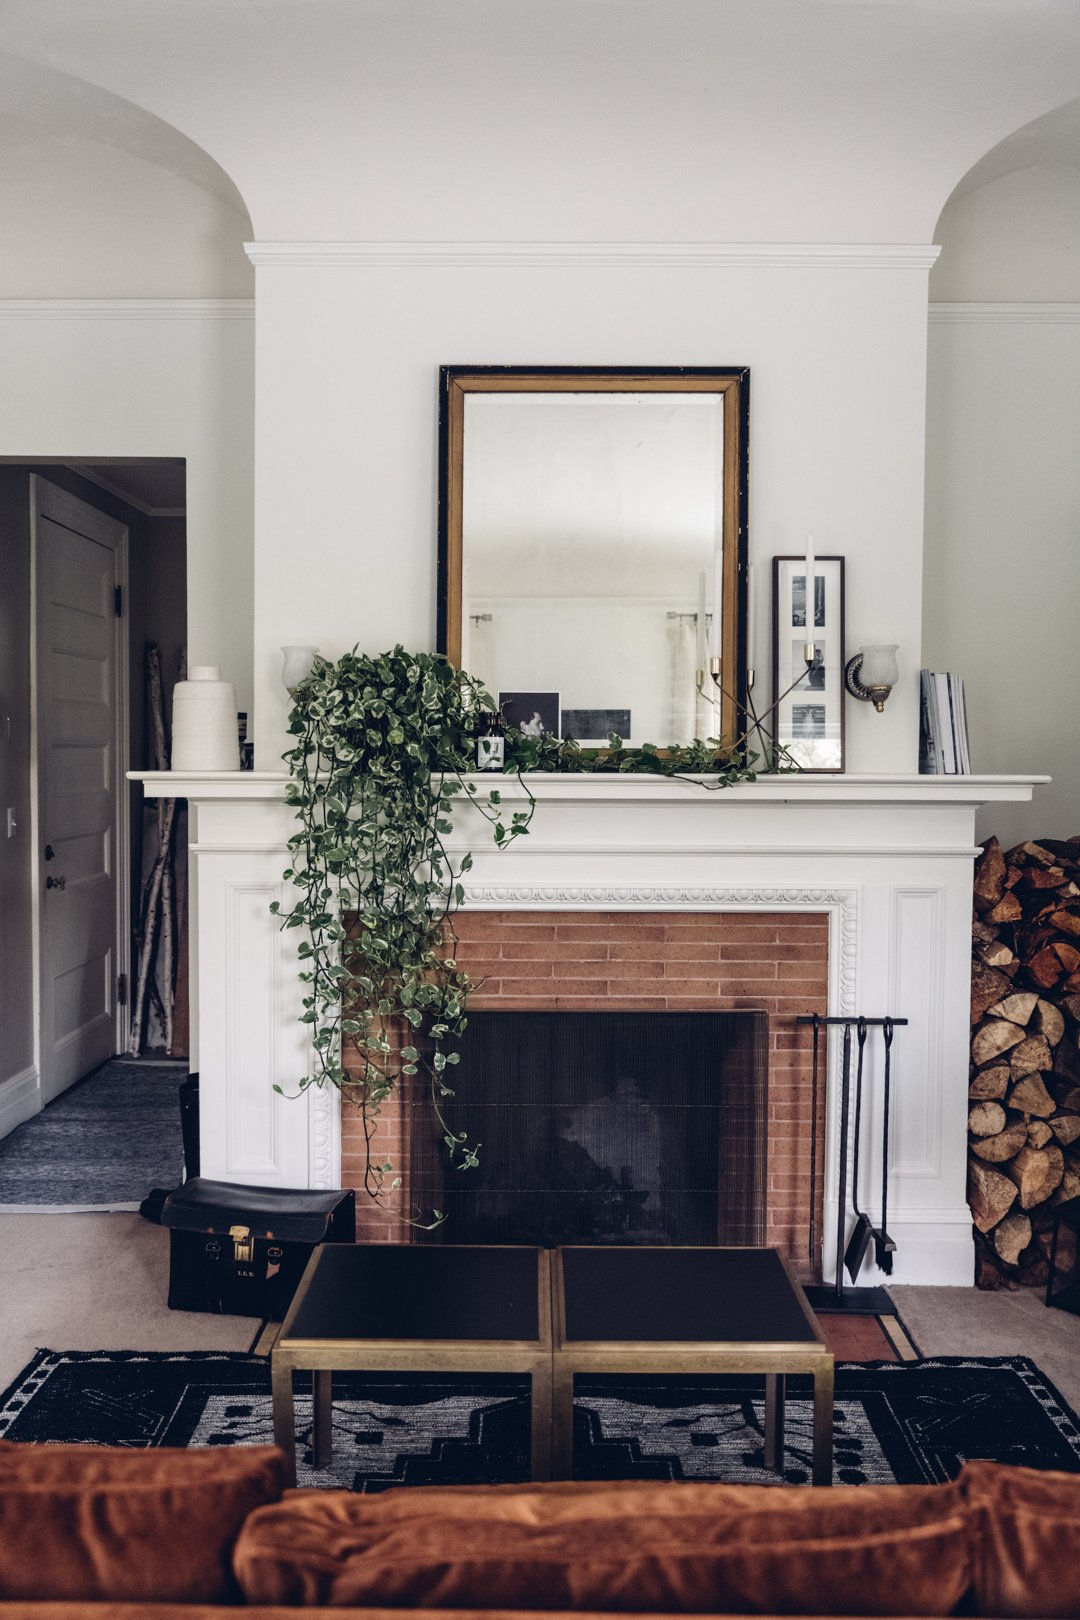 Red brick fireplace with mirror on mantel